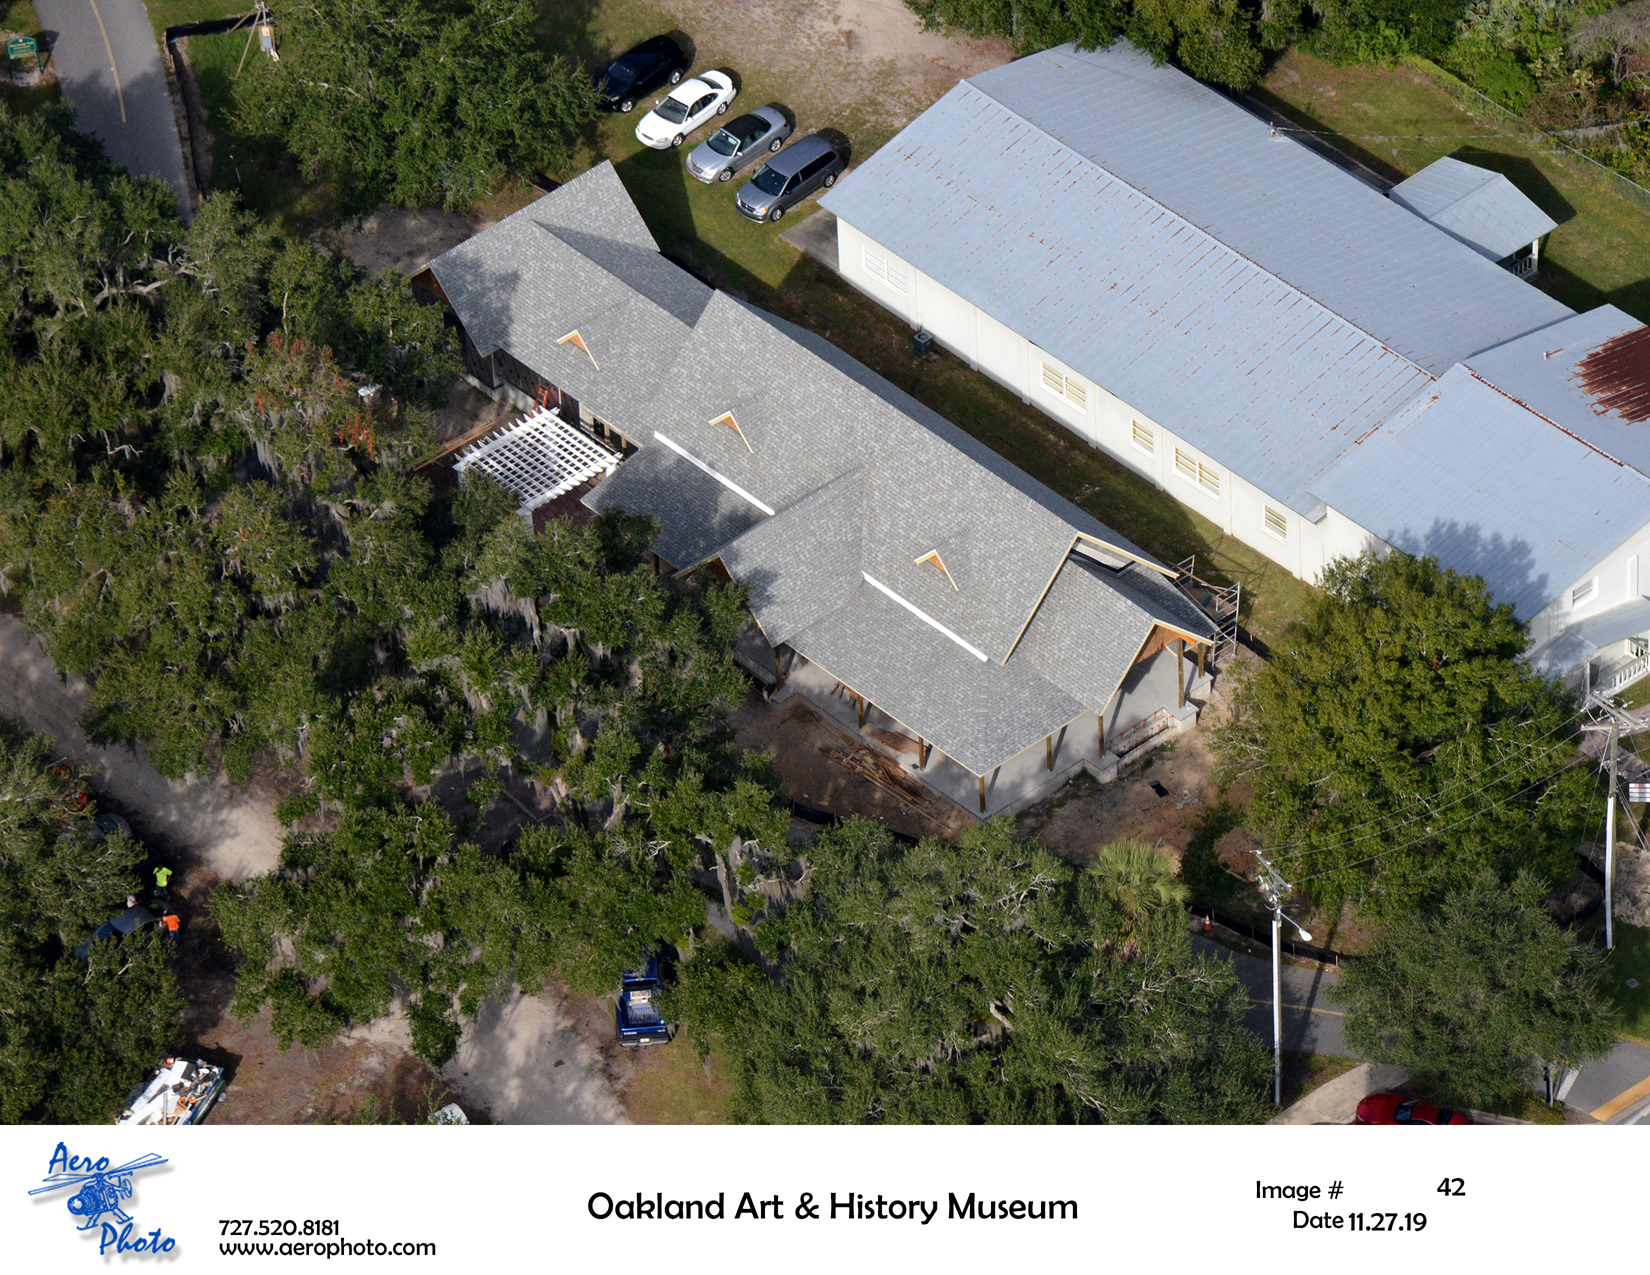 Healthy West Orange Arts & Heritage Center Second Aerial Construction Image